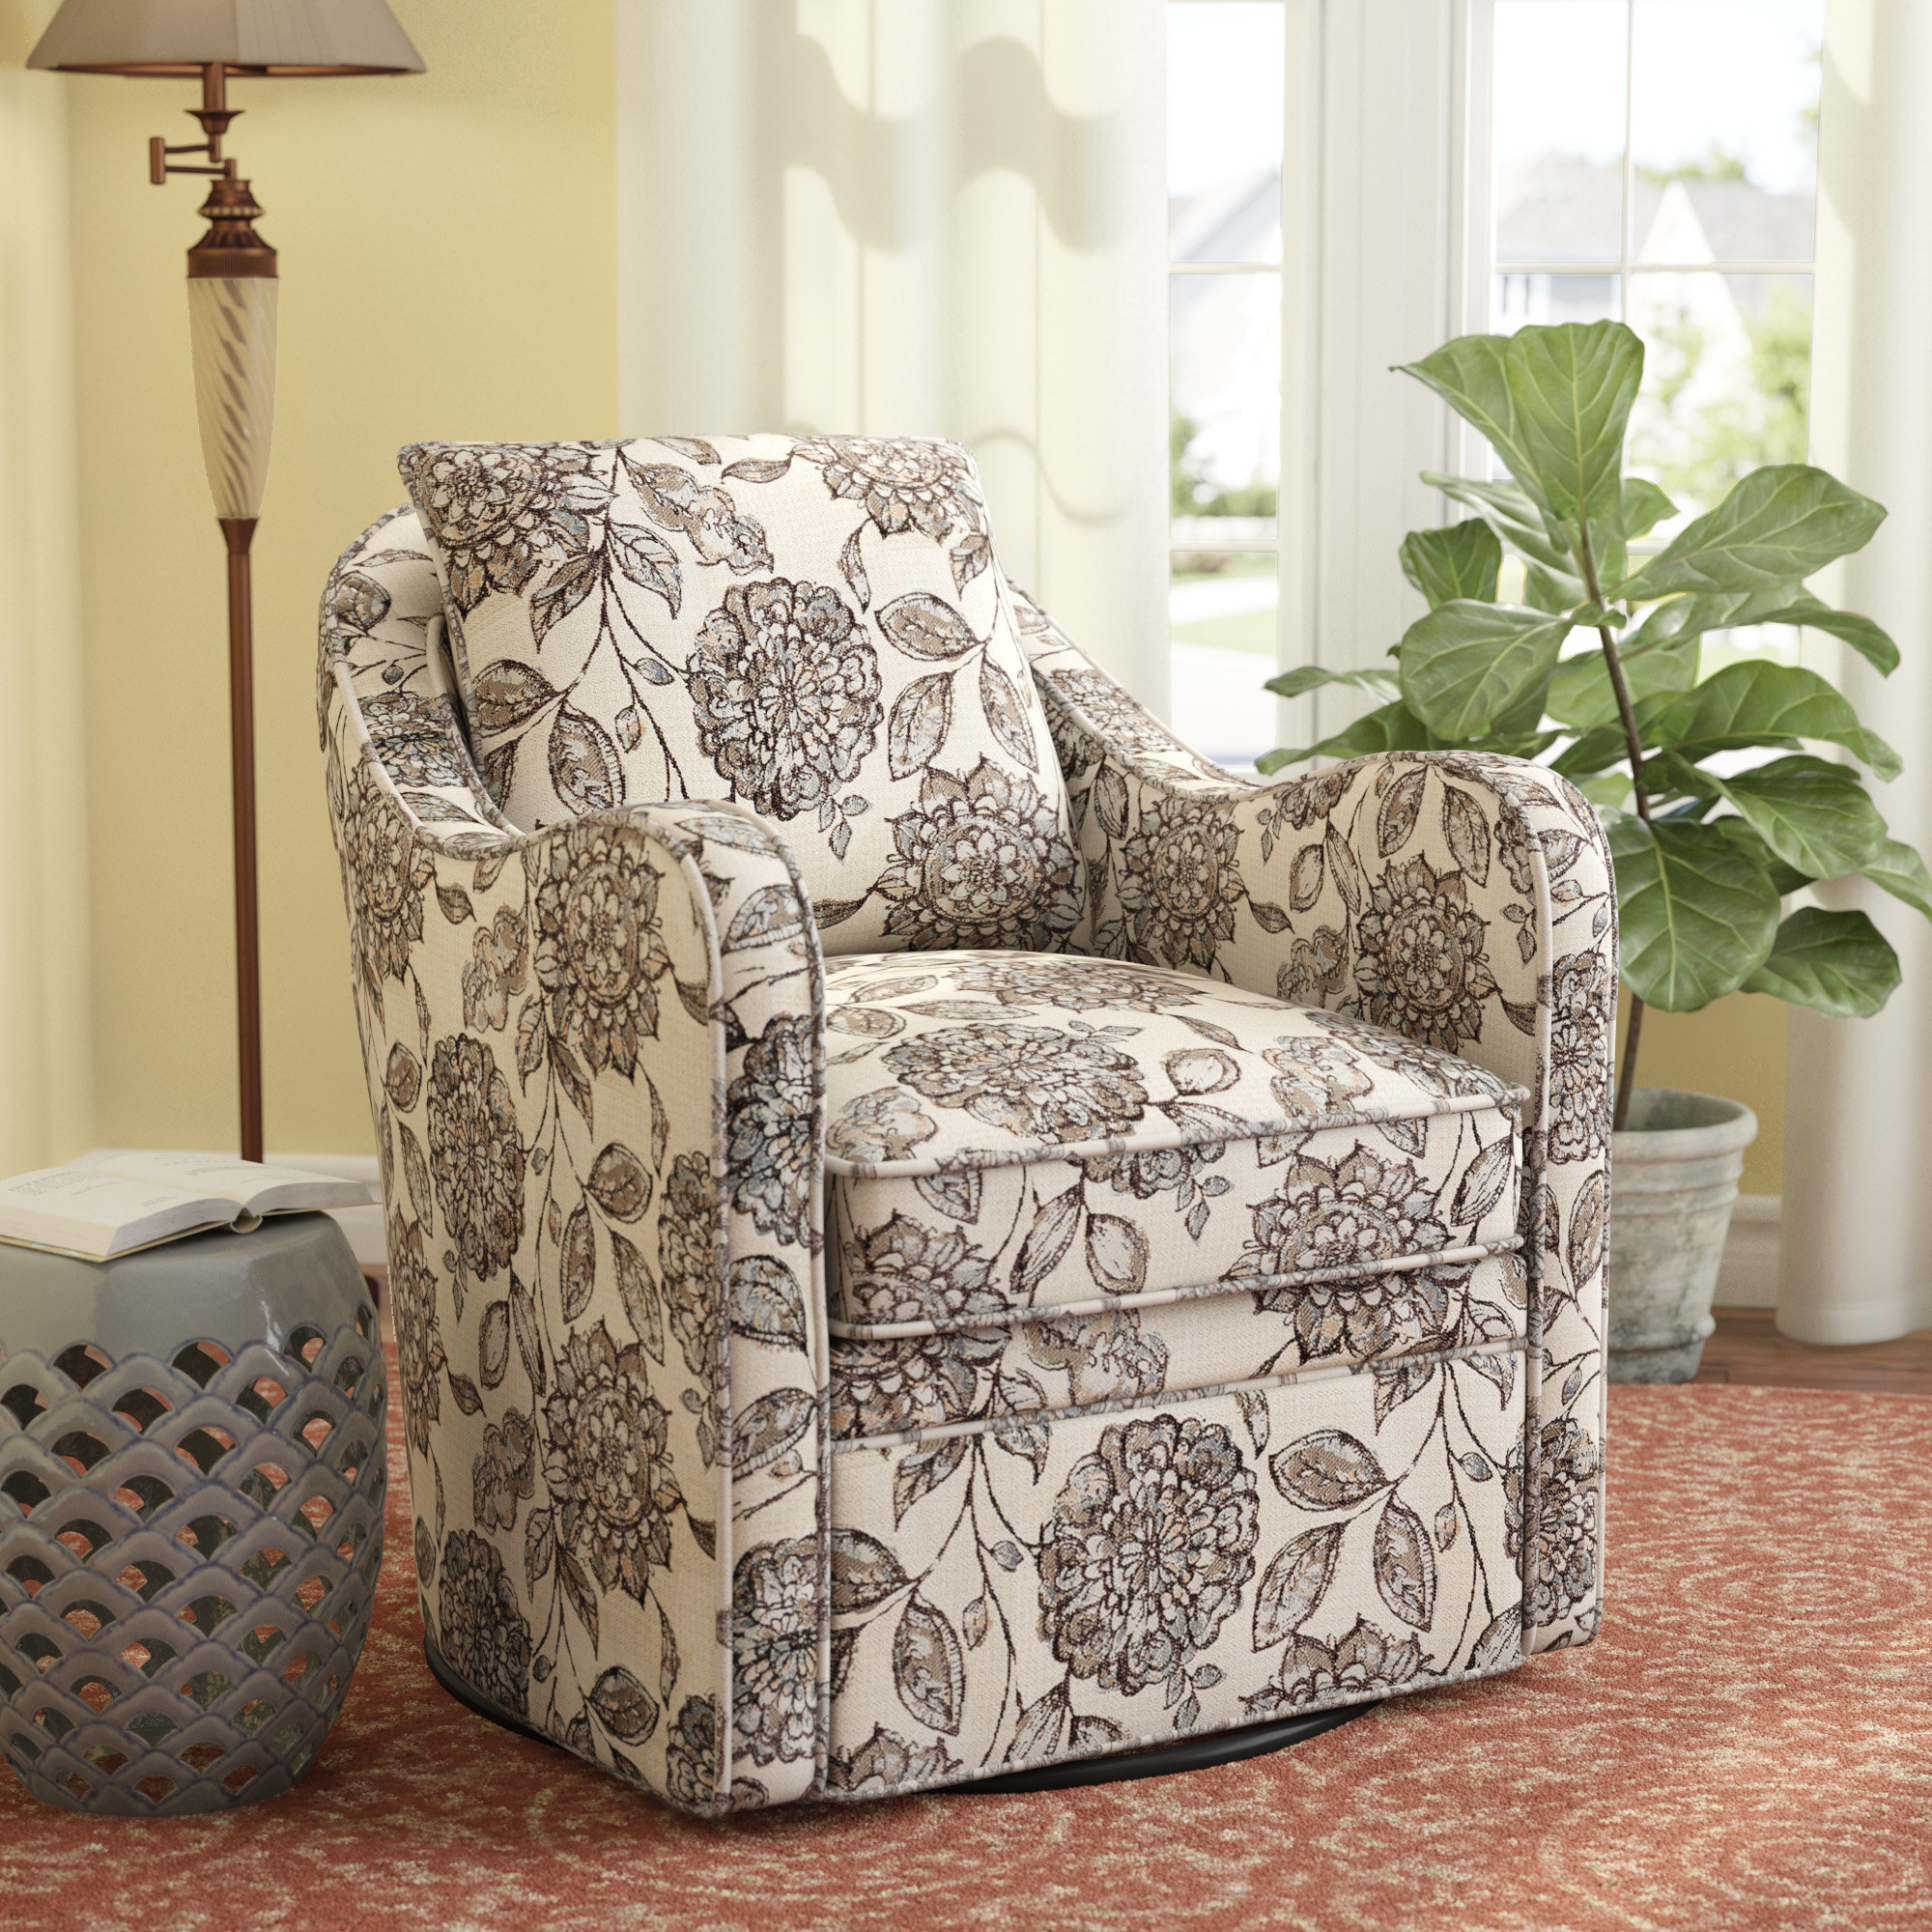 Alcott Hill Brick And Barrel Swivel Armchair & Reviews | Wayfair With Regard To Revolve Swivel Accent Chairs (Image 1 of 23)